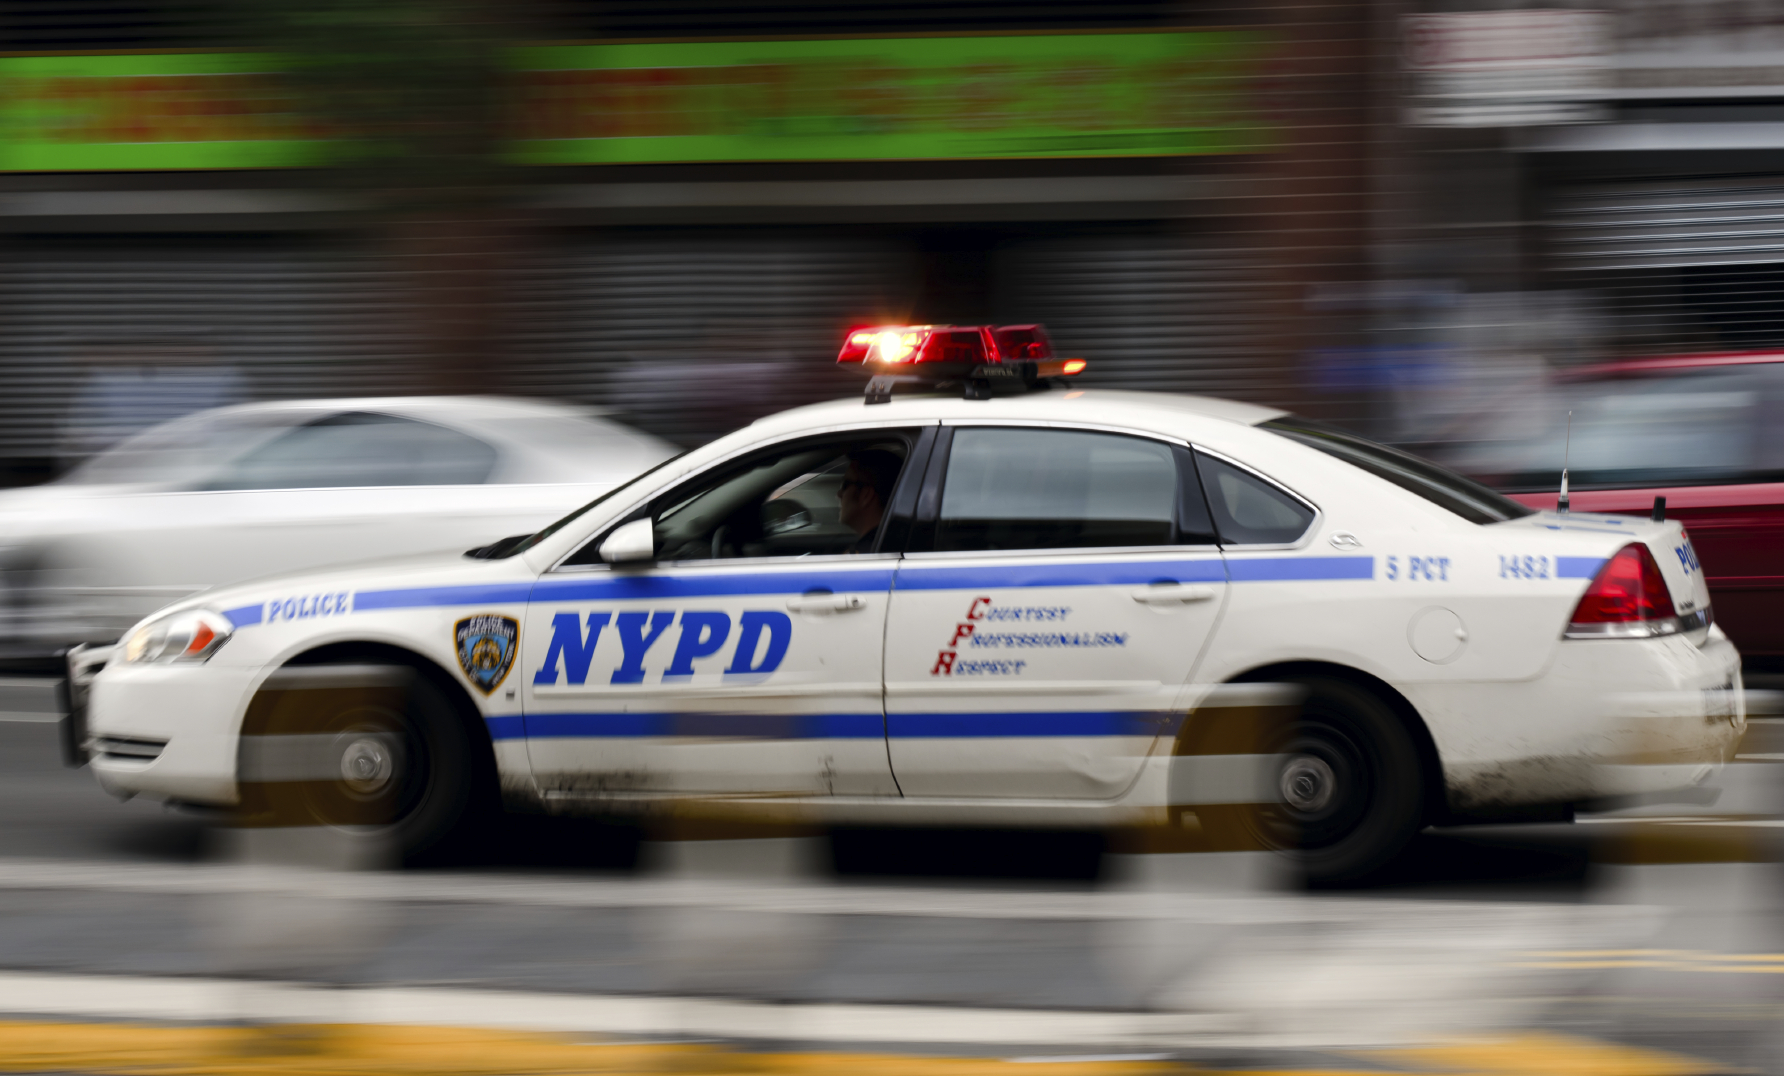 New York Police Car Speeding in NYC